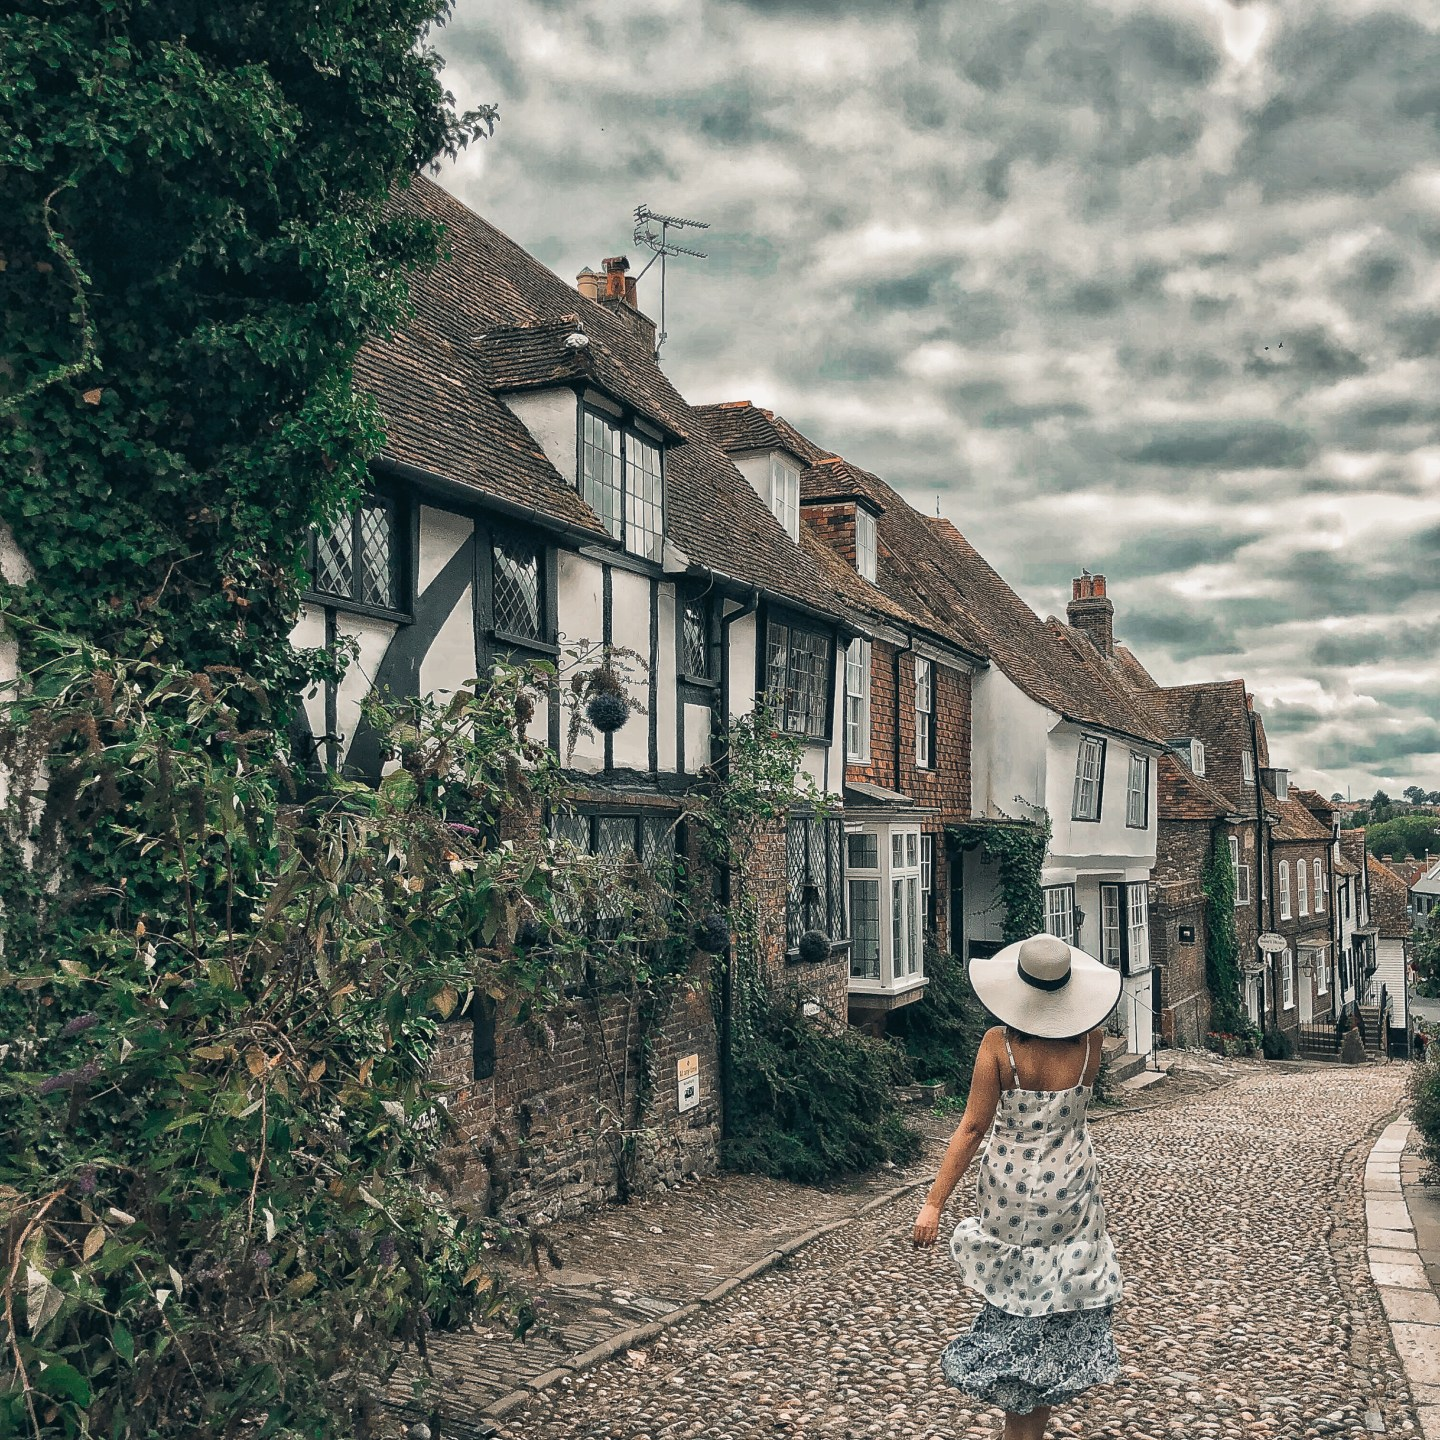 UK STAYCATION IDEAS: Mermaid Street, Rye, East Sussex, UK